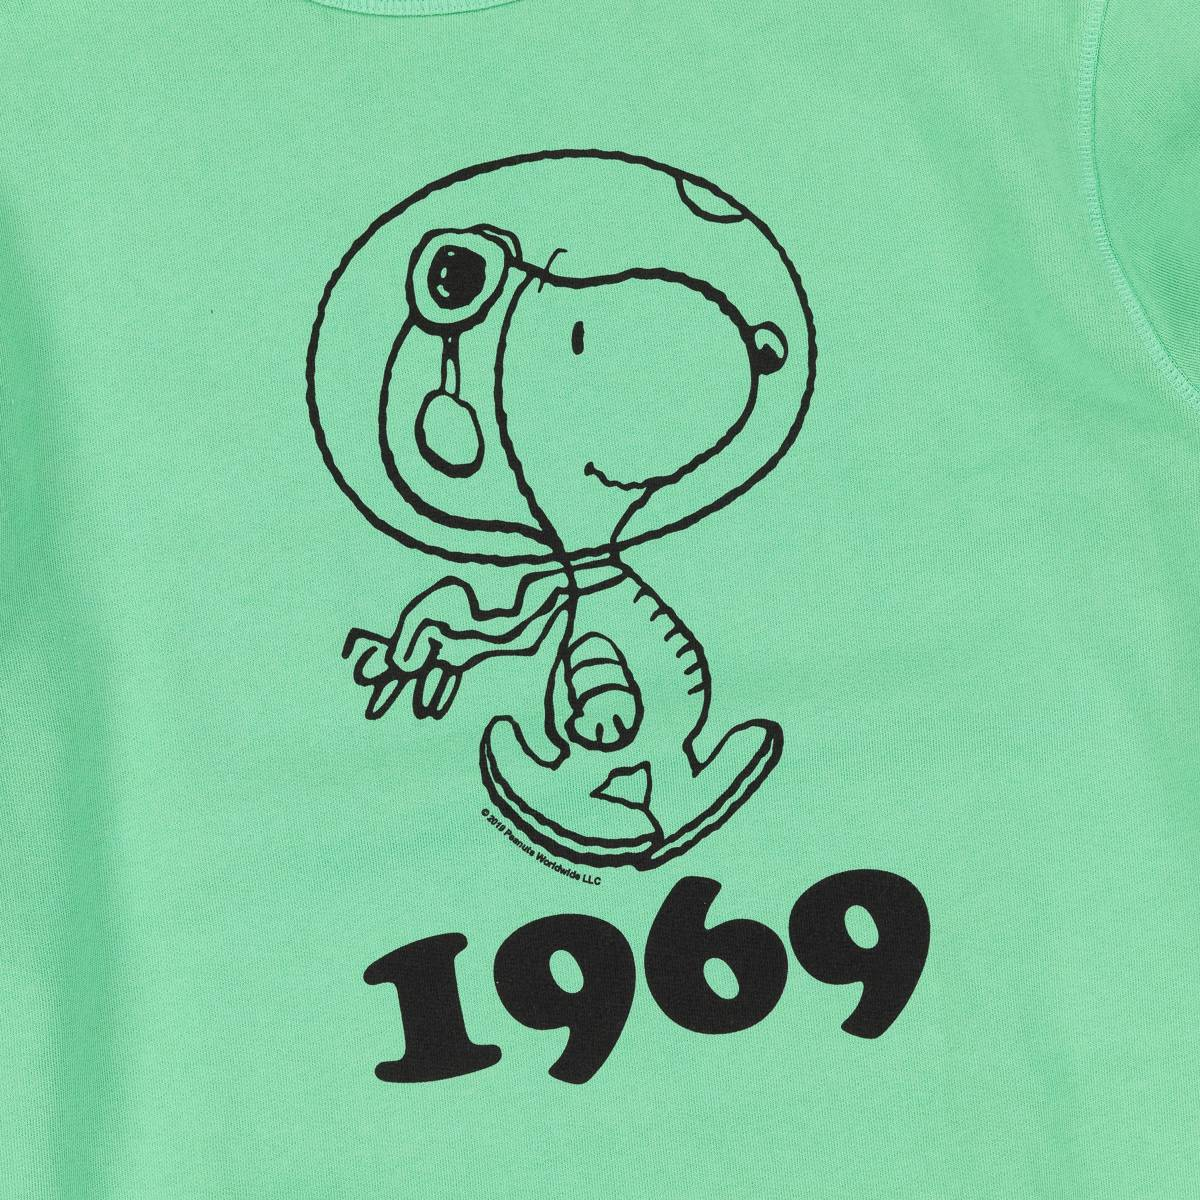 Snoopy 1969 Sweatshirt